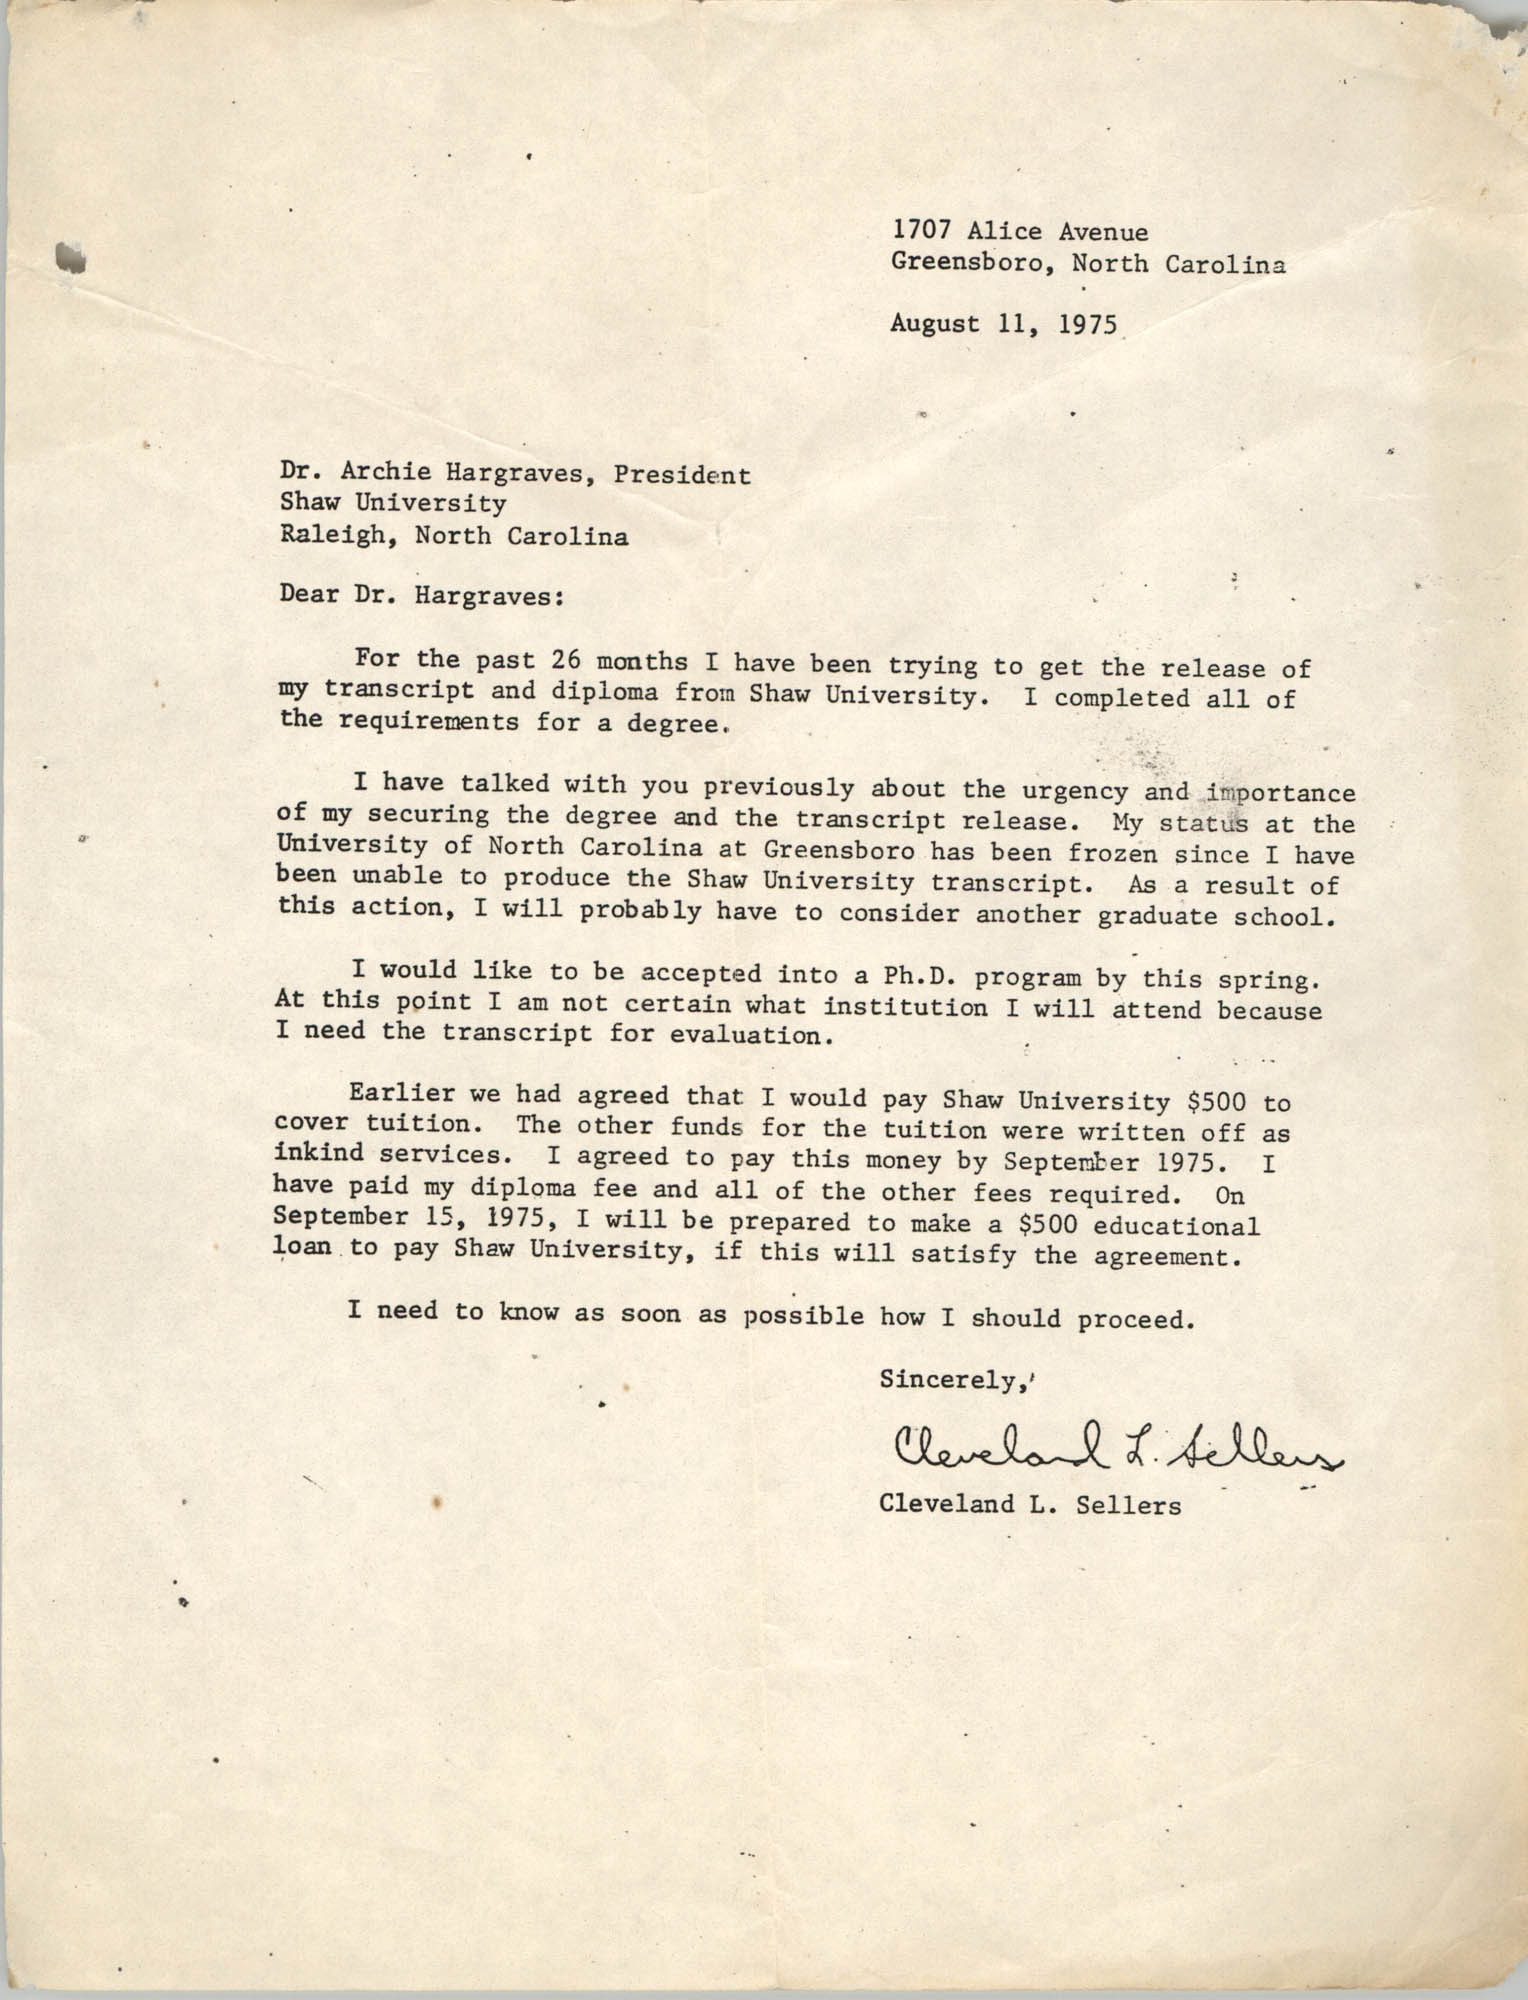 Letter from Cleveland Sellers to Archie Hargraves, August 11, 1975